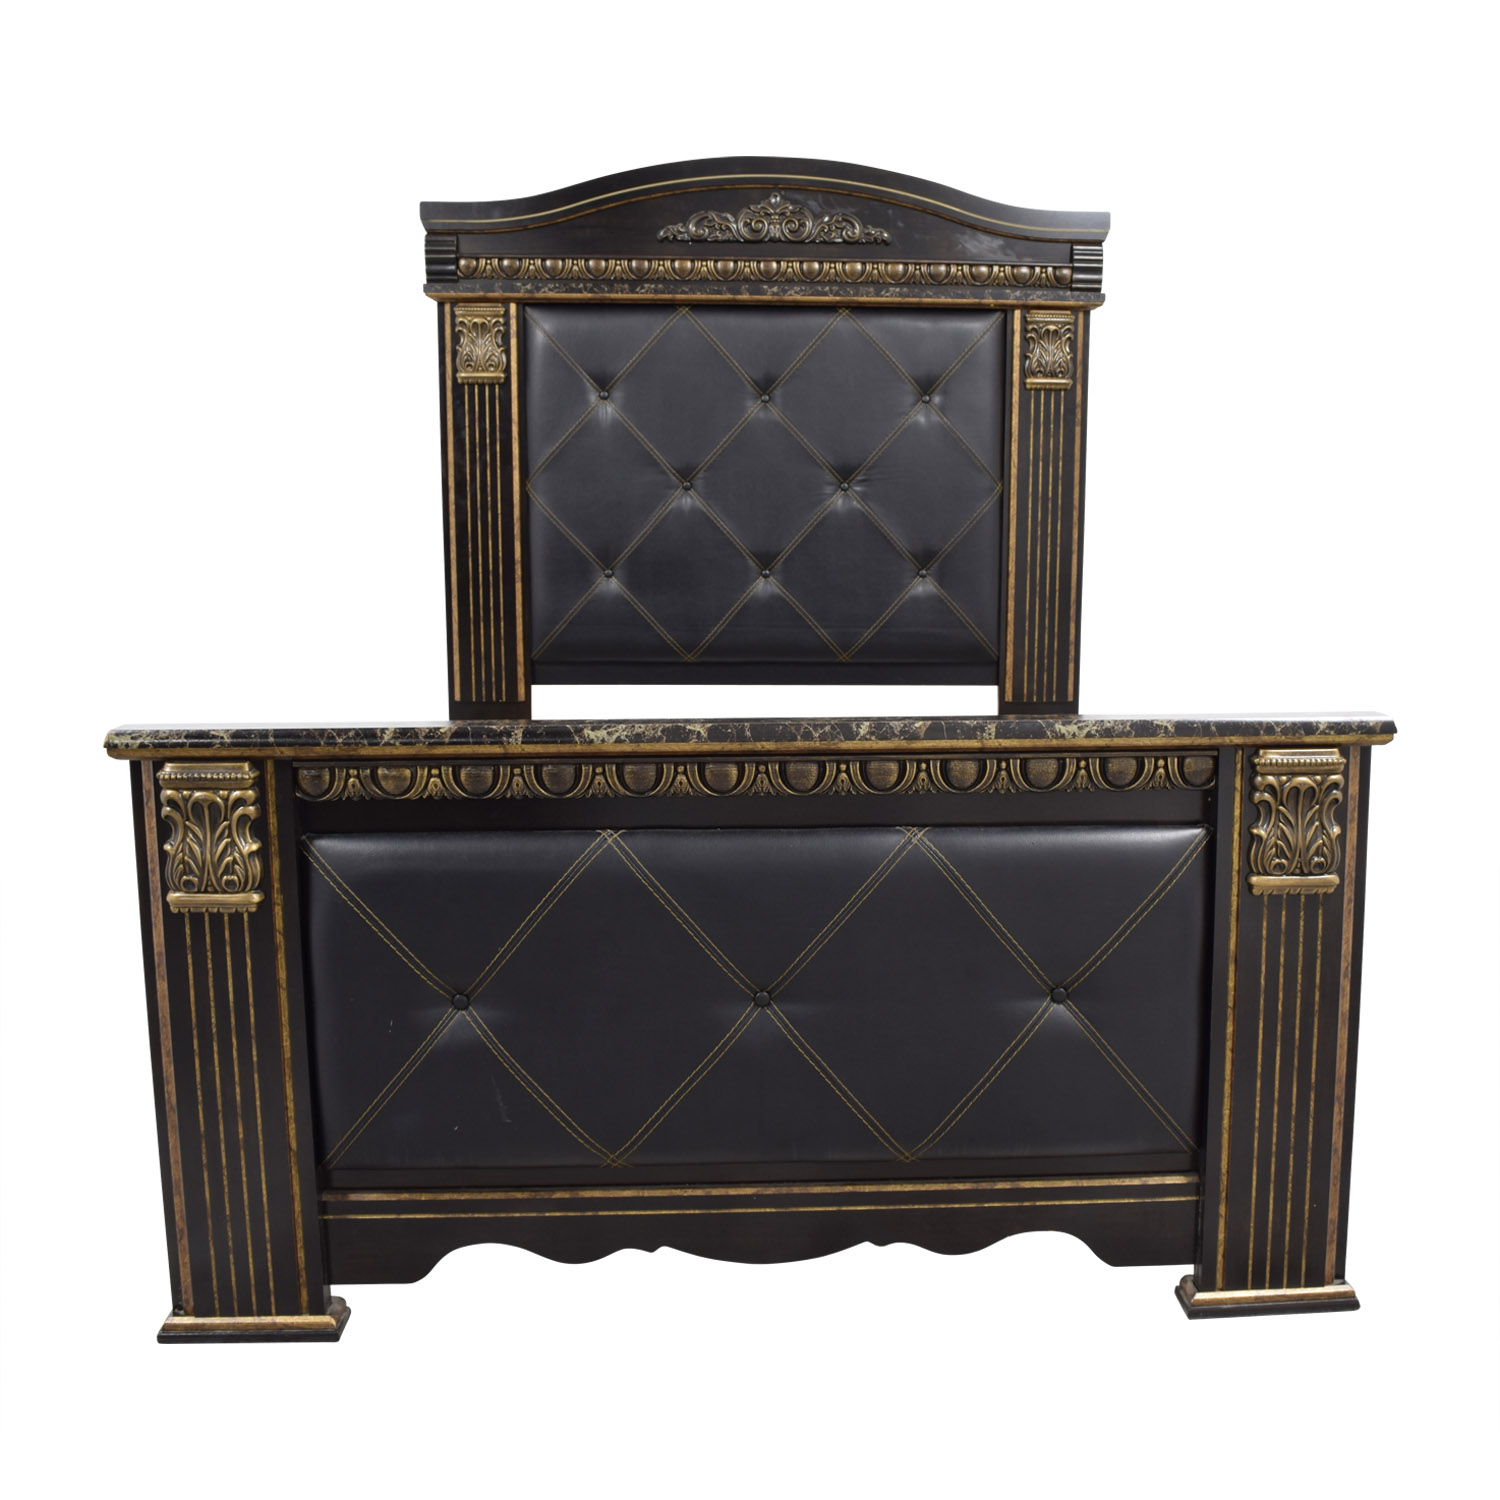 90 Off Signature Cal King Black Leather With Gold Trim Bed Frame Beds